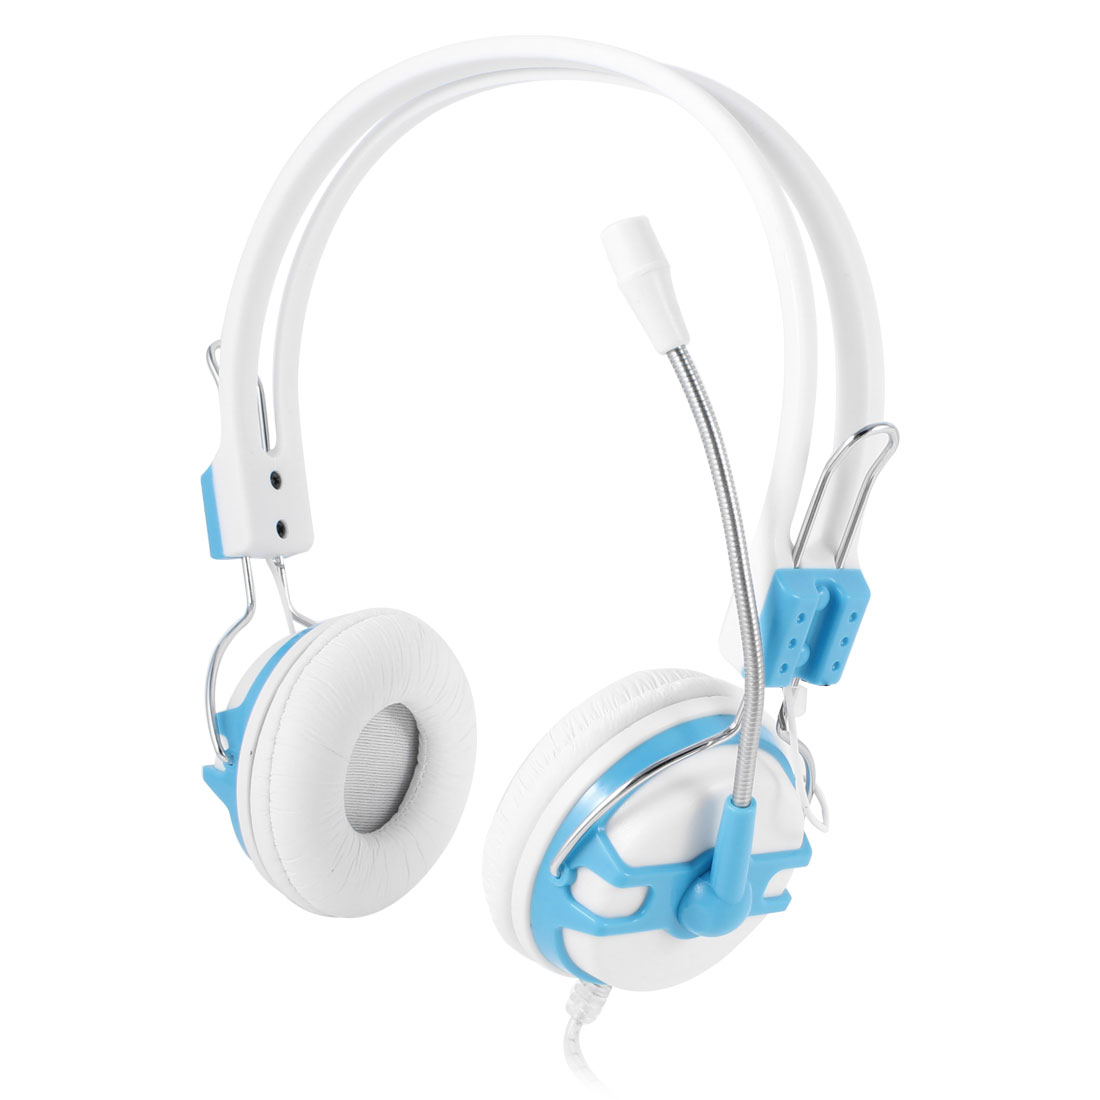 Sky Blue White 3.5mm Stereo Connector Braided Shelled Cable Headset Headphone w Mic